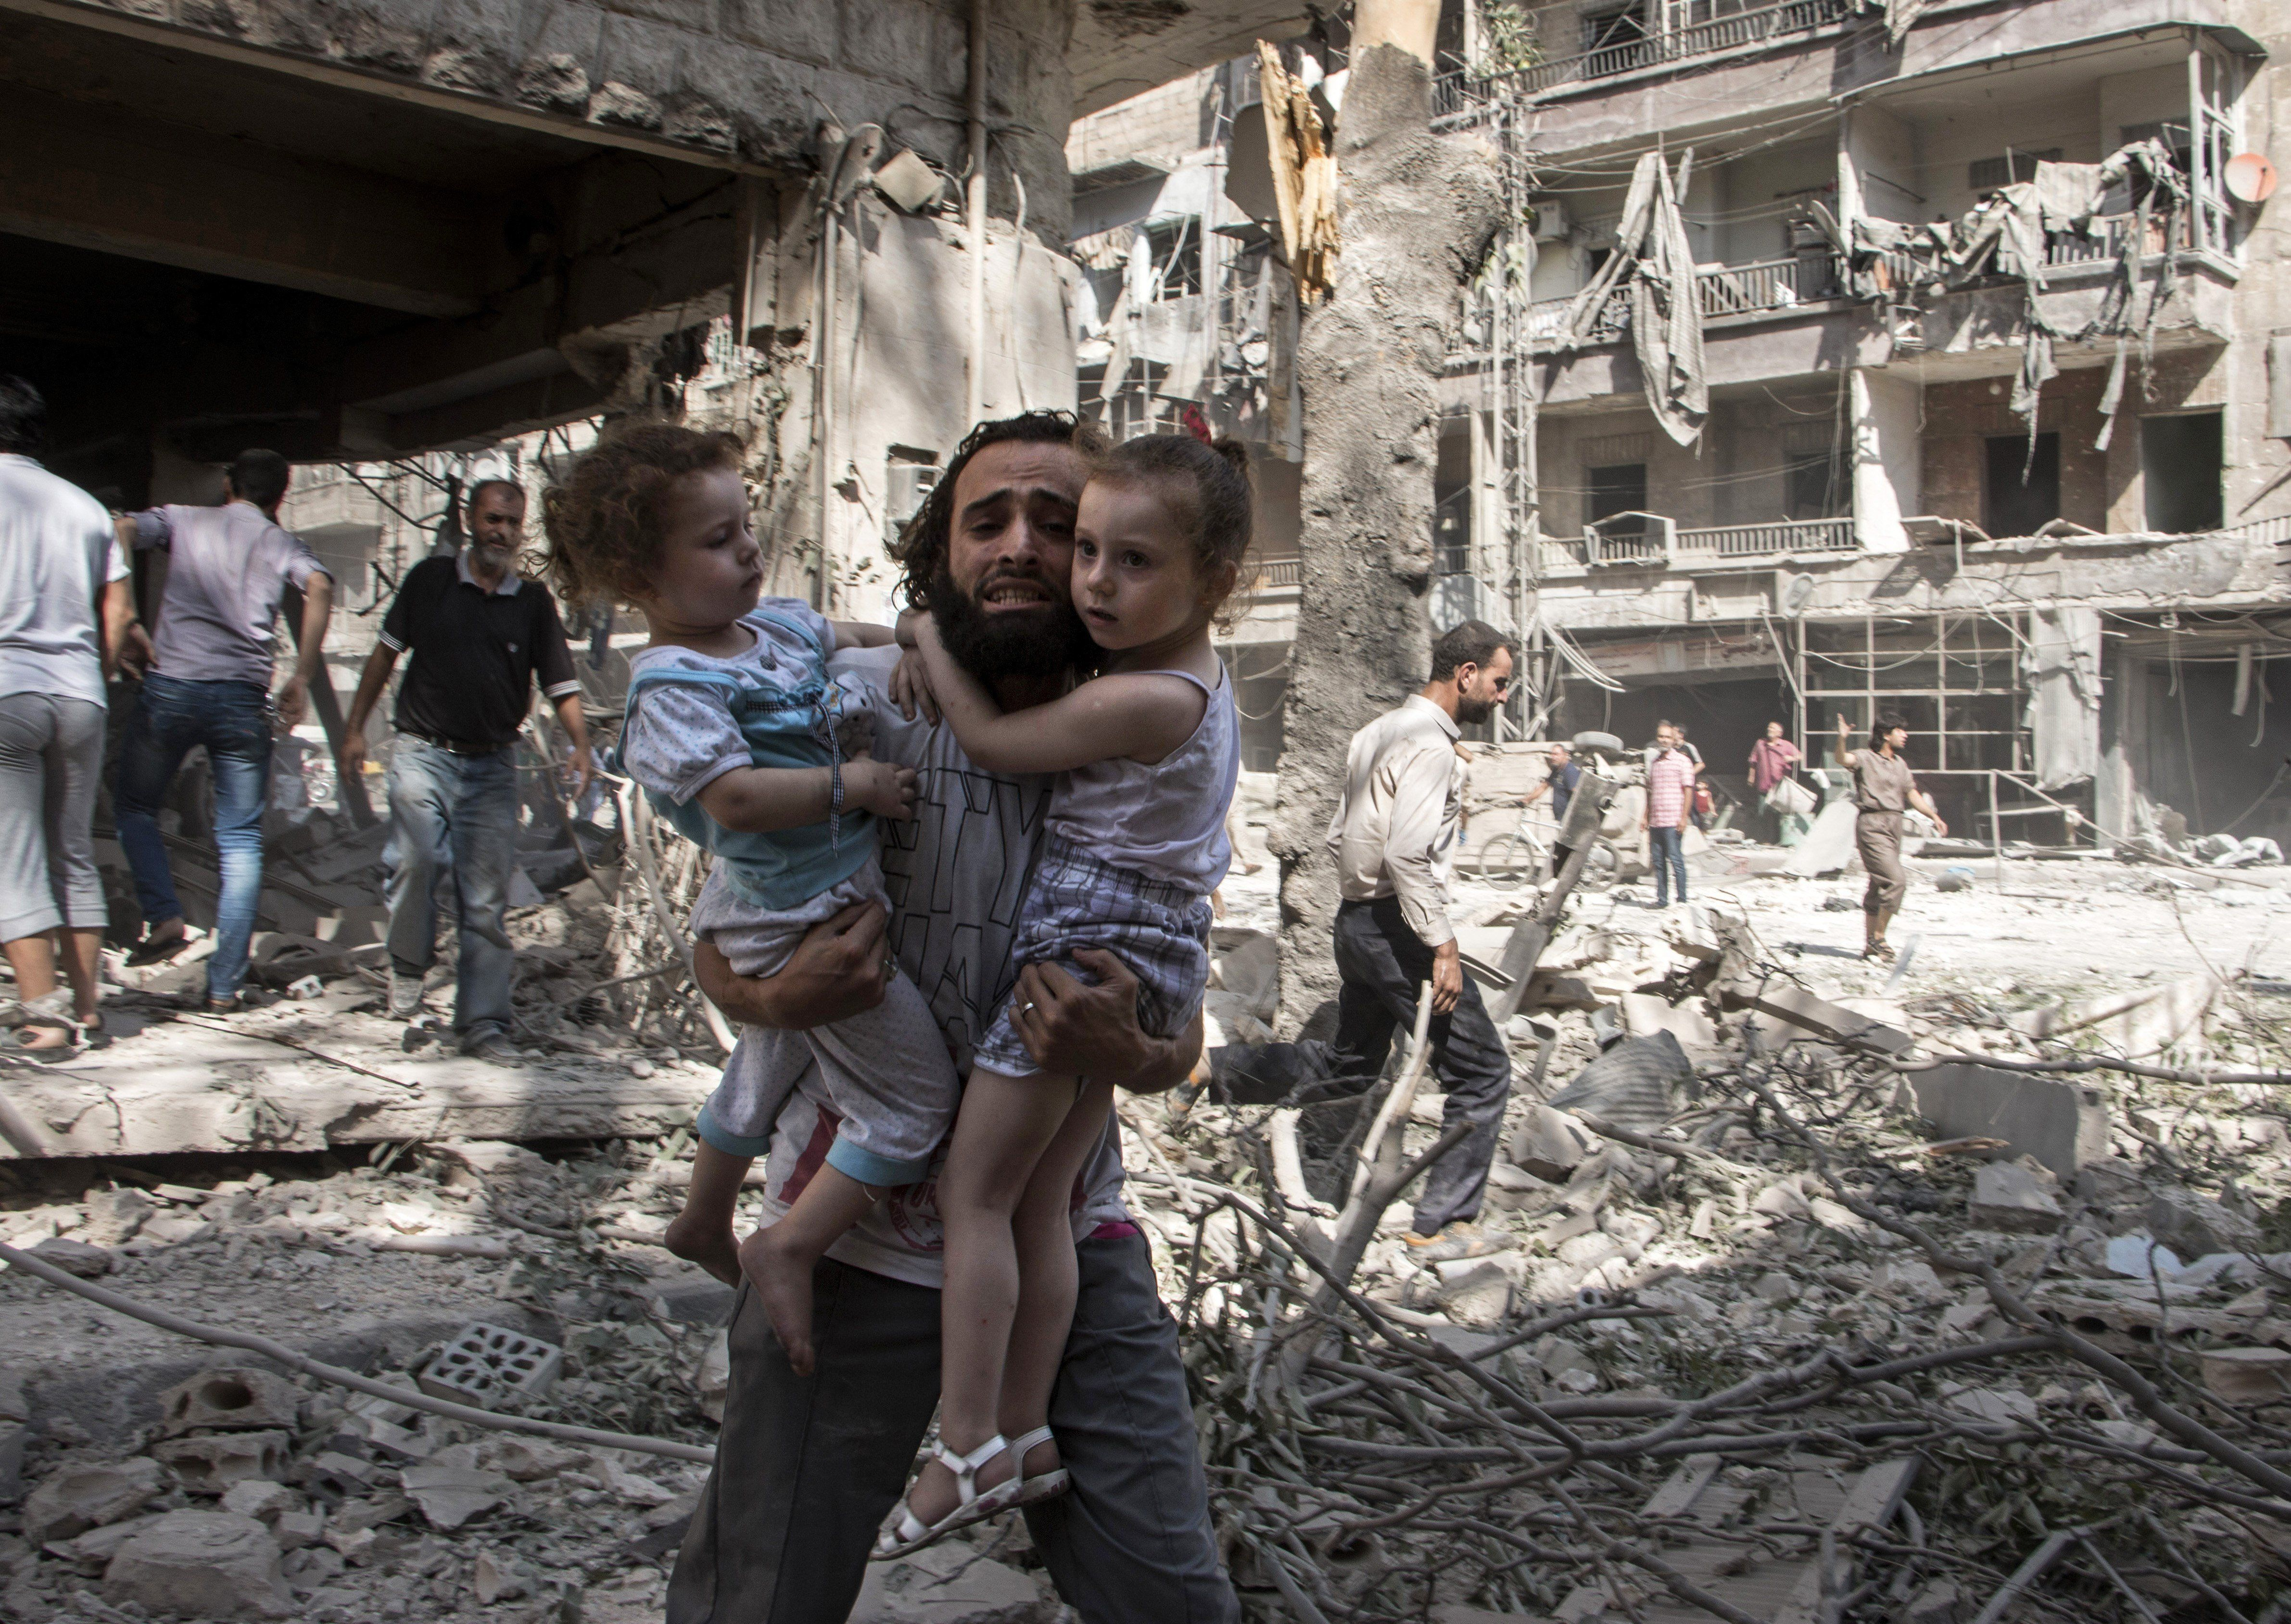 """<span class='image-component__caption' itemprop=""""caption"""">A Syrian man carries his two girls as he walks across the rubble following an airstrike in Aleppo on Sept.17, 2015.</span>"""